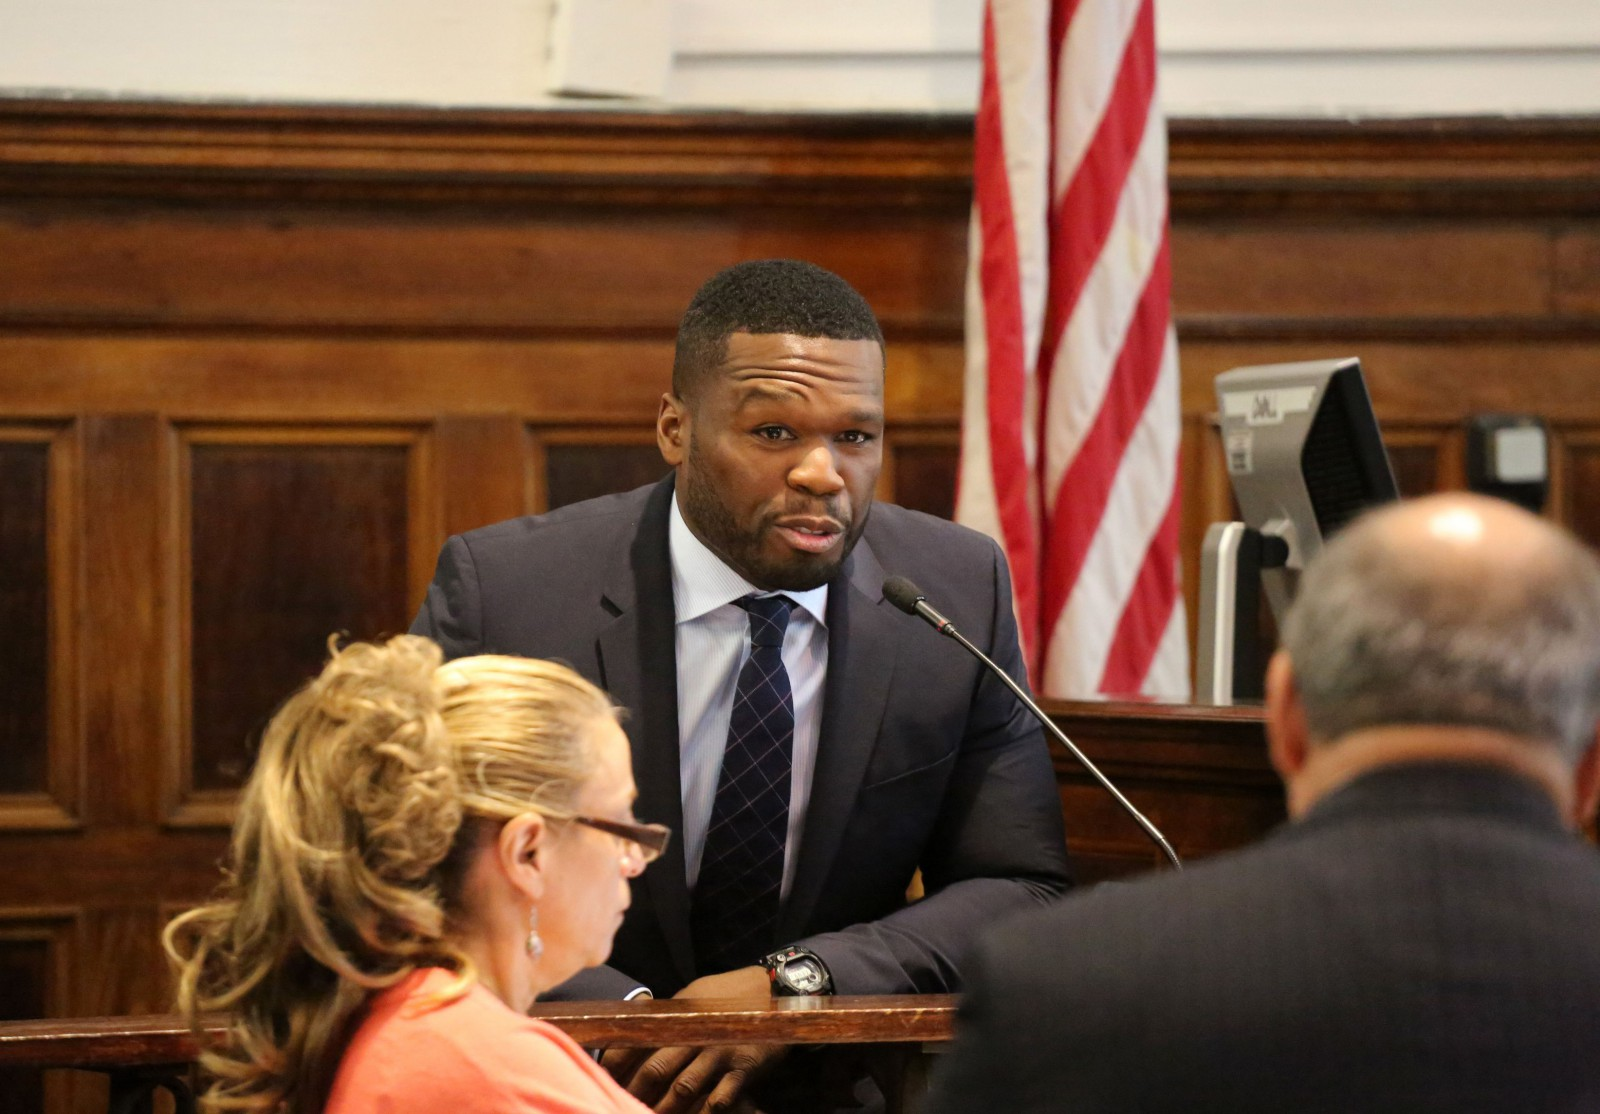 Curtis Jackson, aka 50 Cent, appears in Manhattan Supreme Court on Tuesday, July 21, 2015 in New York to testify in a lawsuit about a sex tape he allegedly posted online. (Jefferson Siegel/New York Daily News/POOL)